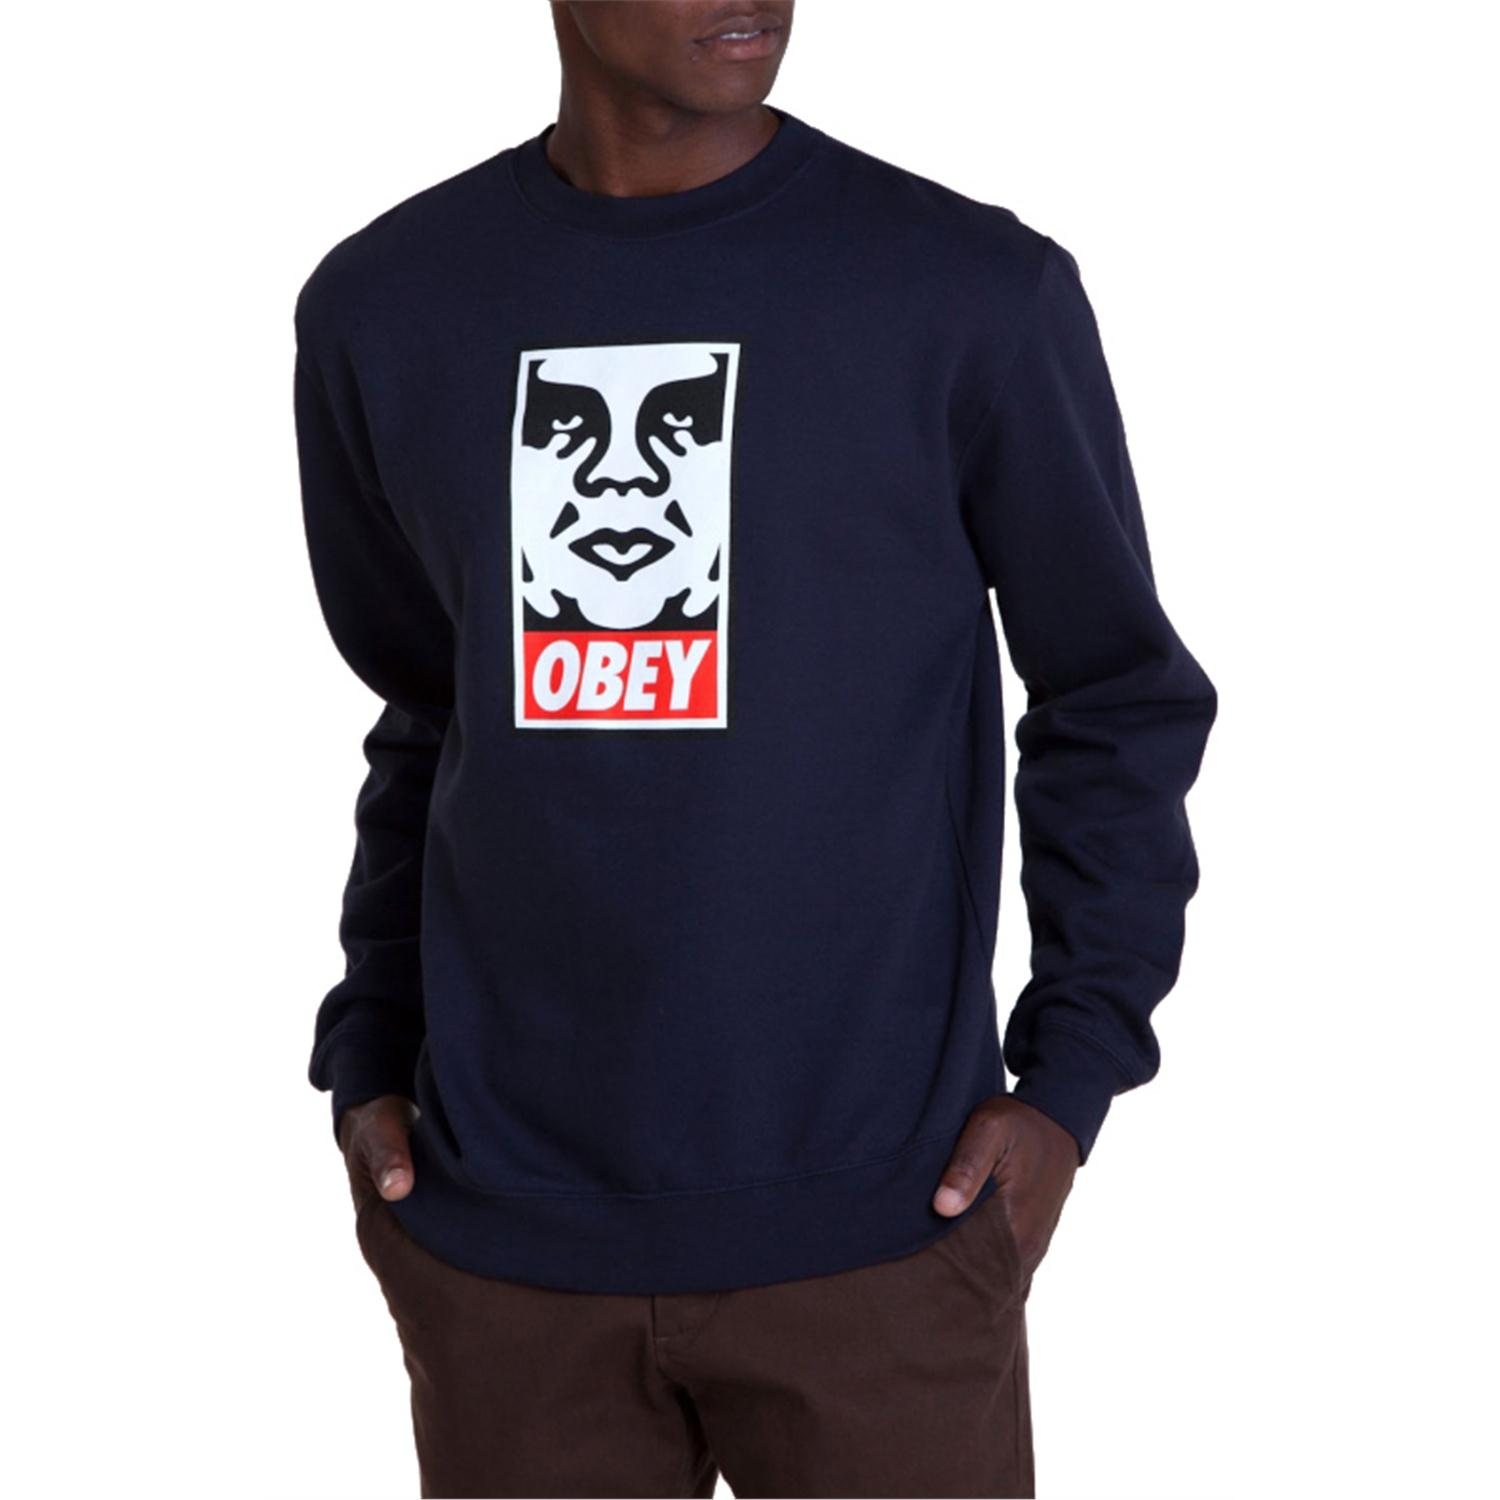 Obey Women's & Men's Clothing | NordstromBrands: Aquatalia, Munro, Paul Green, Fly London, Jeffrey Campbell.